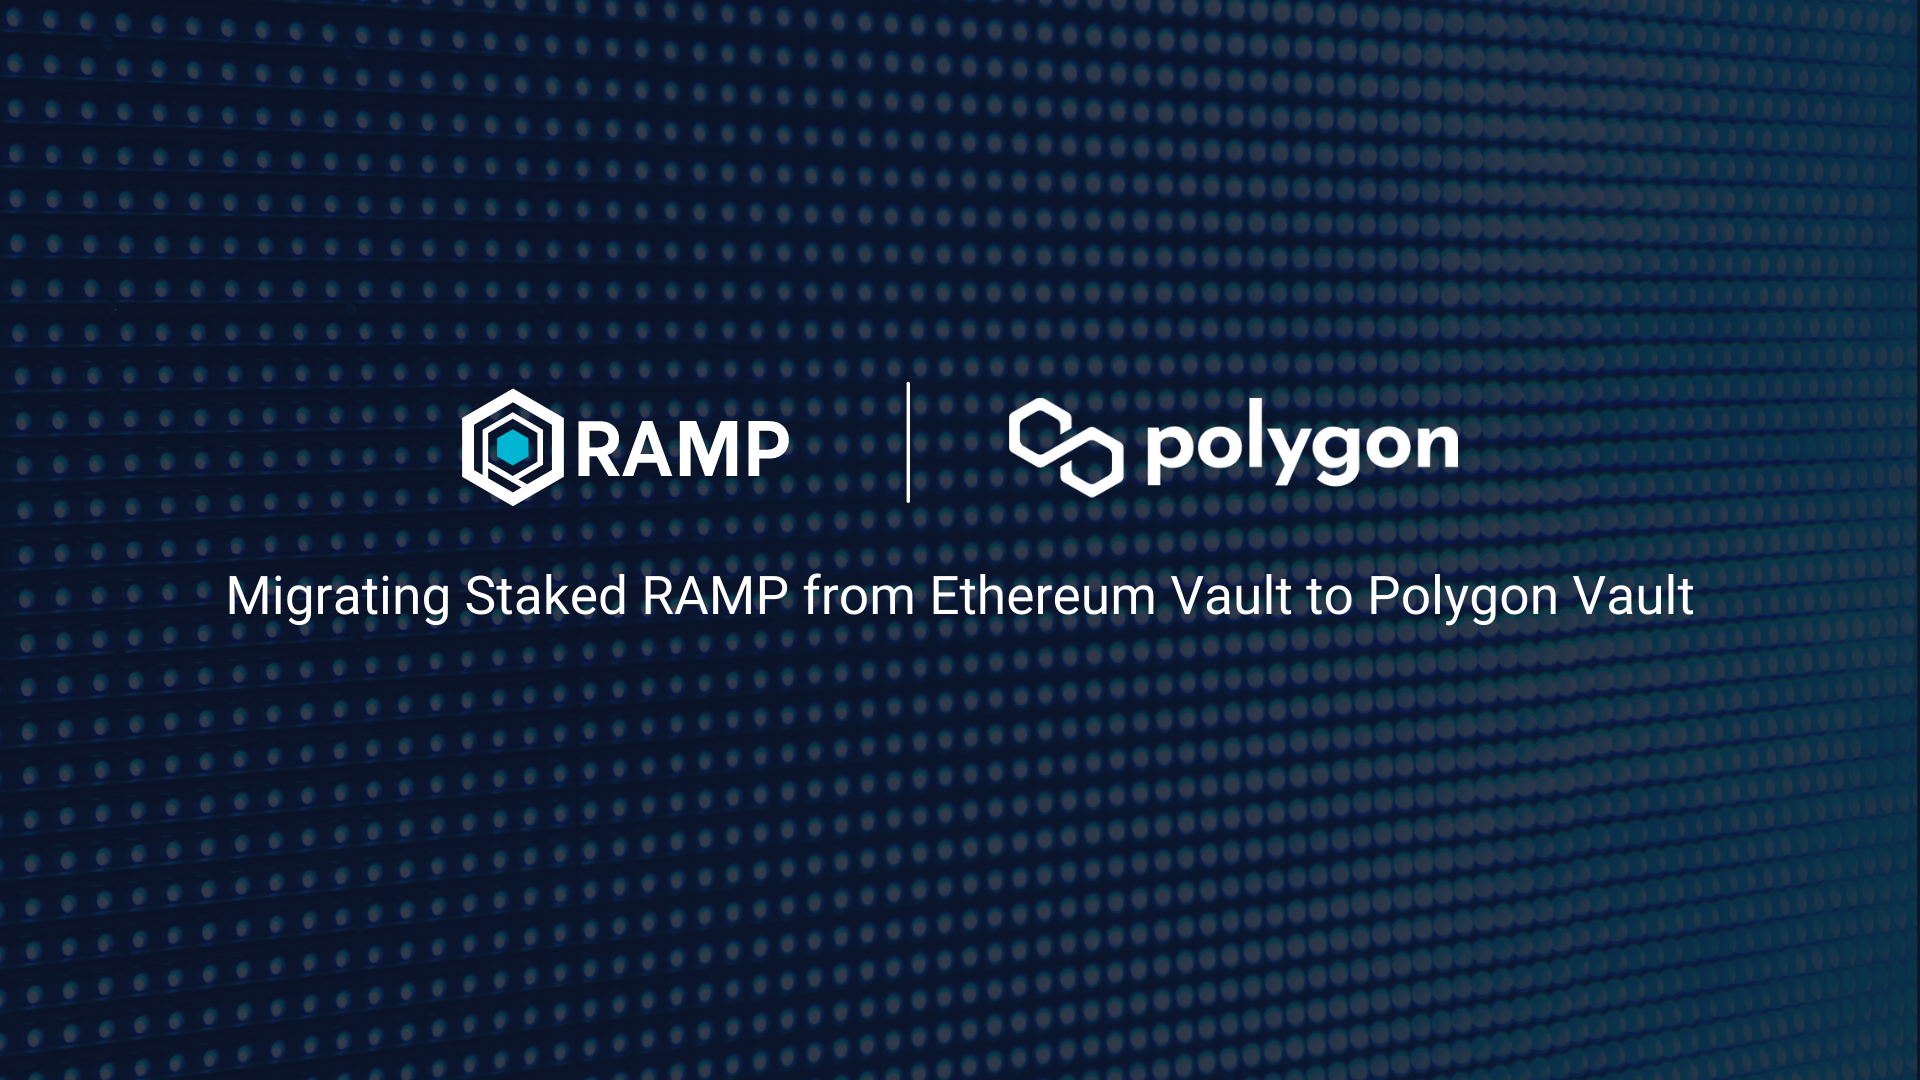 1*c3Qko9VE 6fJo42J qbZgA User Guide to Migrate Staked RAMP from Ethereum Vault to Polygon Vault